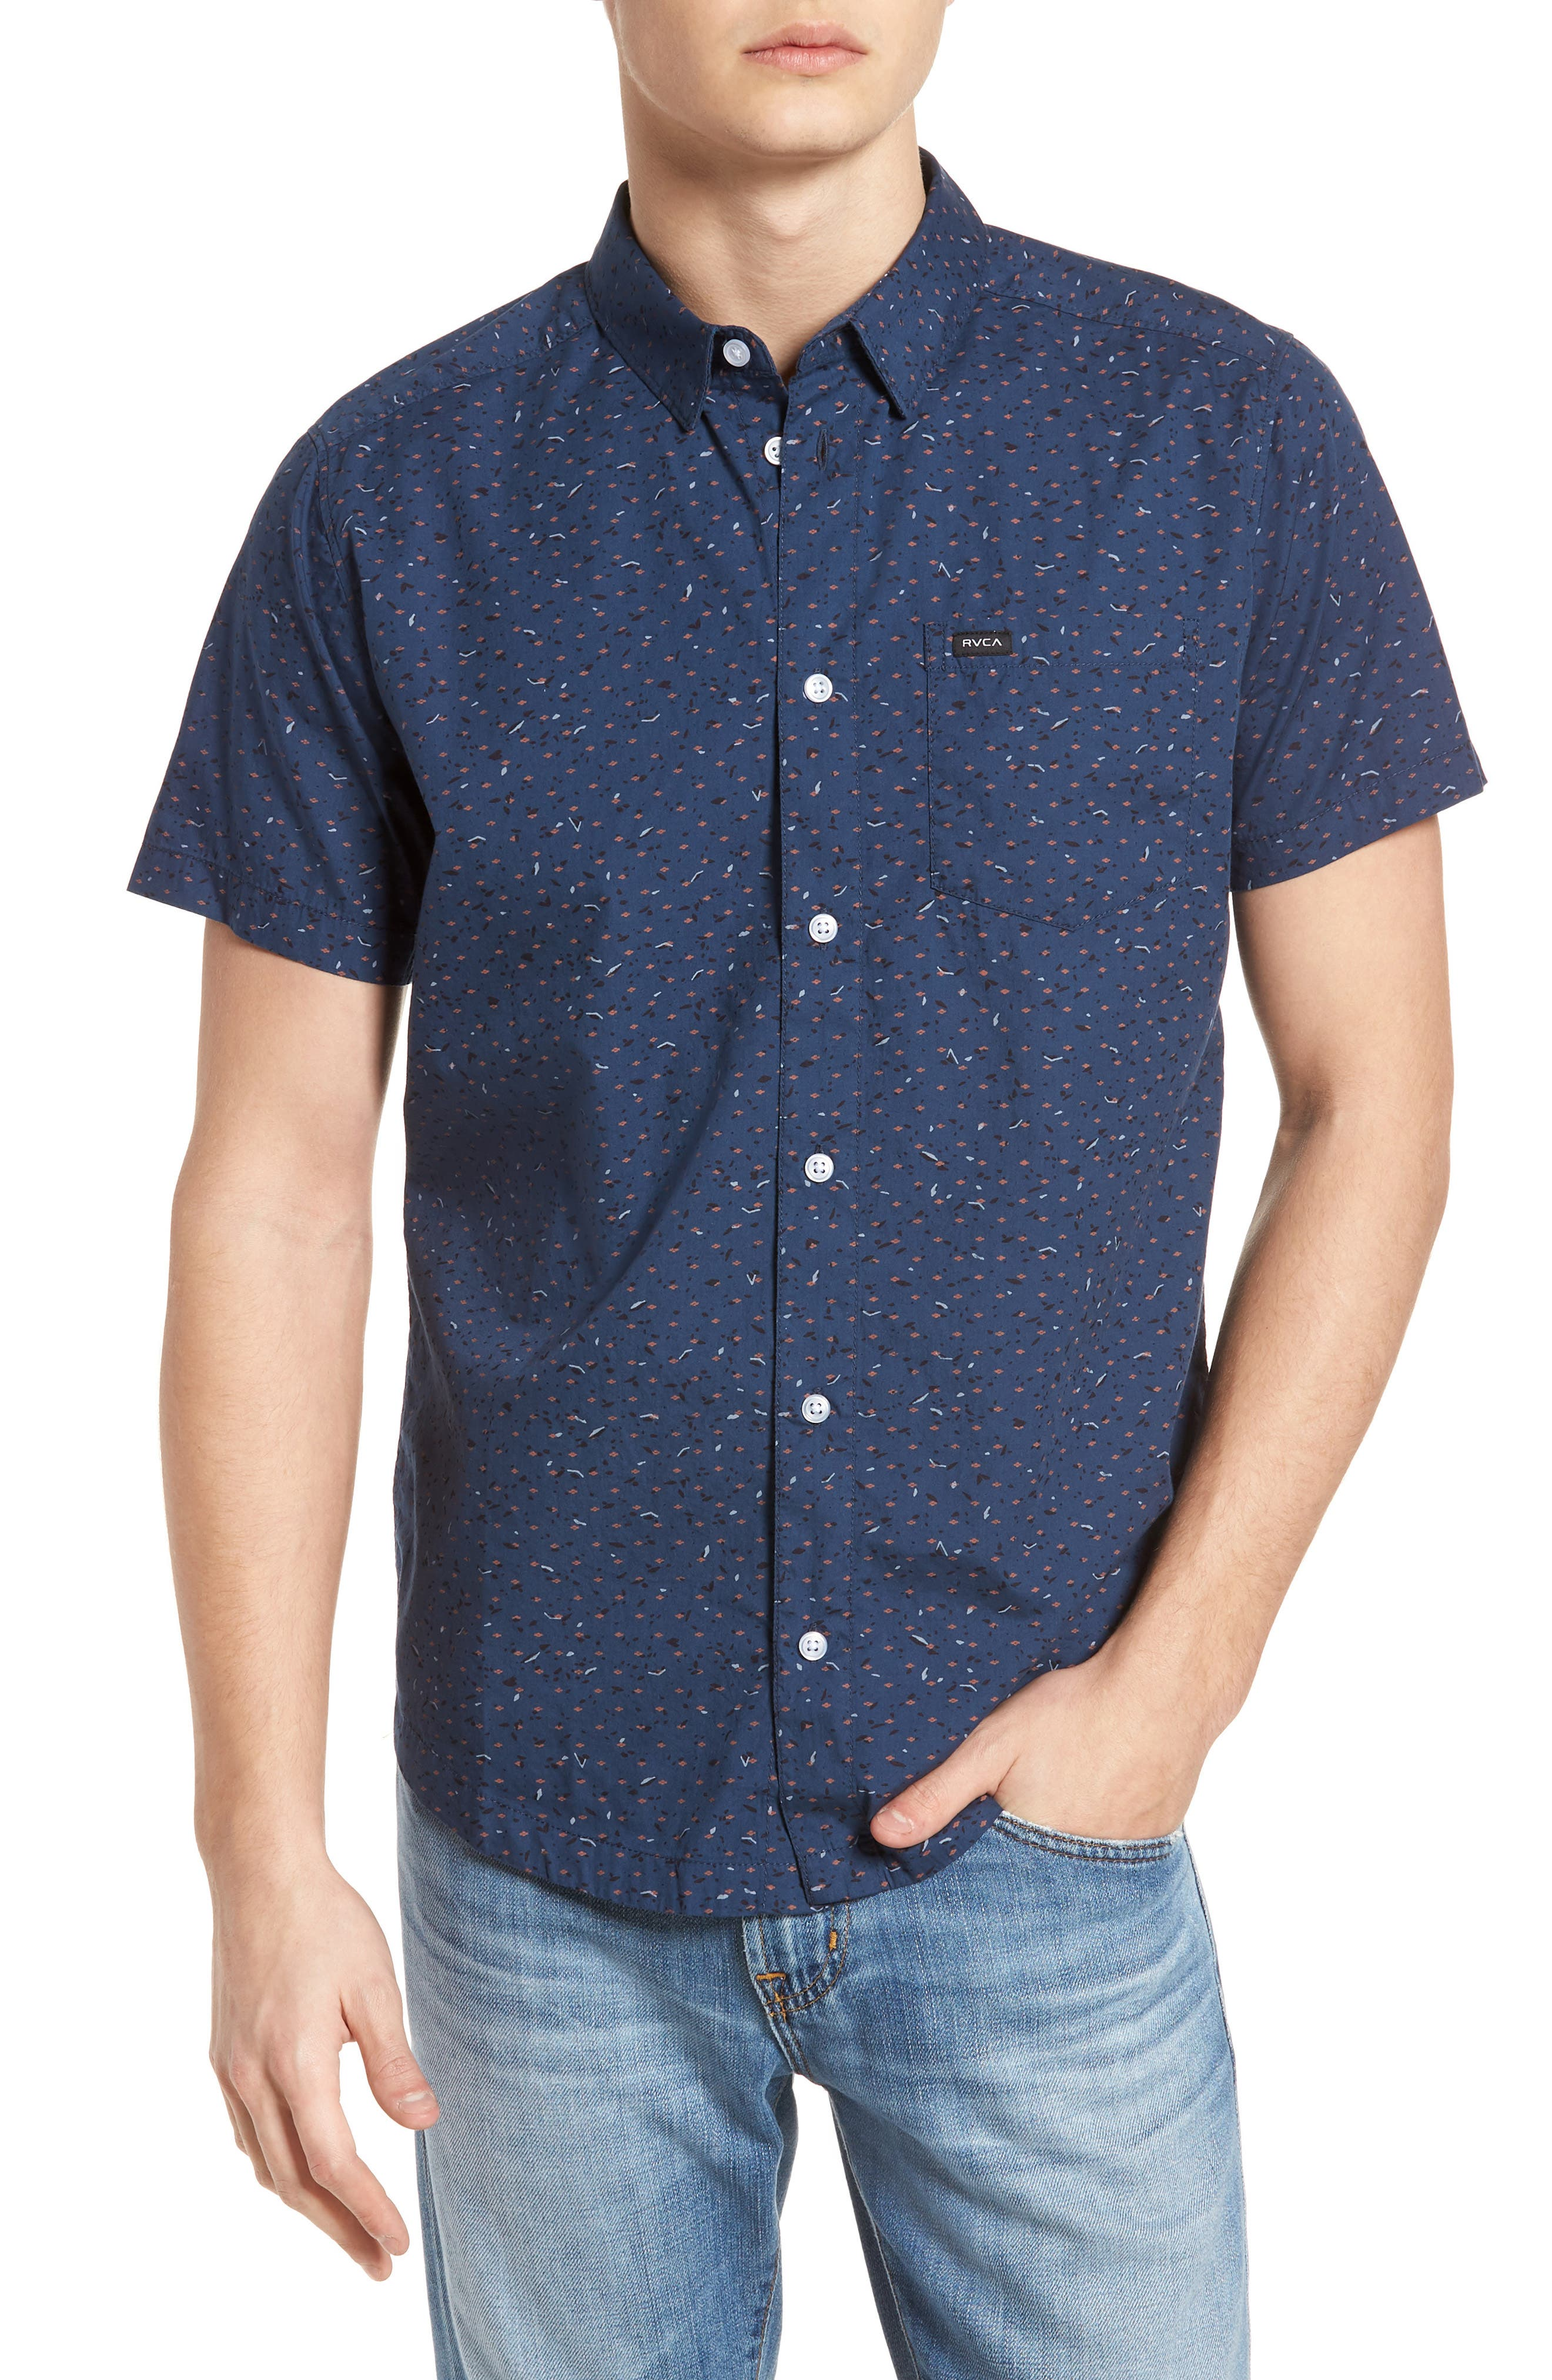 Jaded Woven Shirt,                             Main thumbnail 1, color,                             487